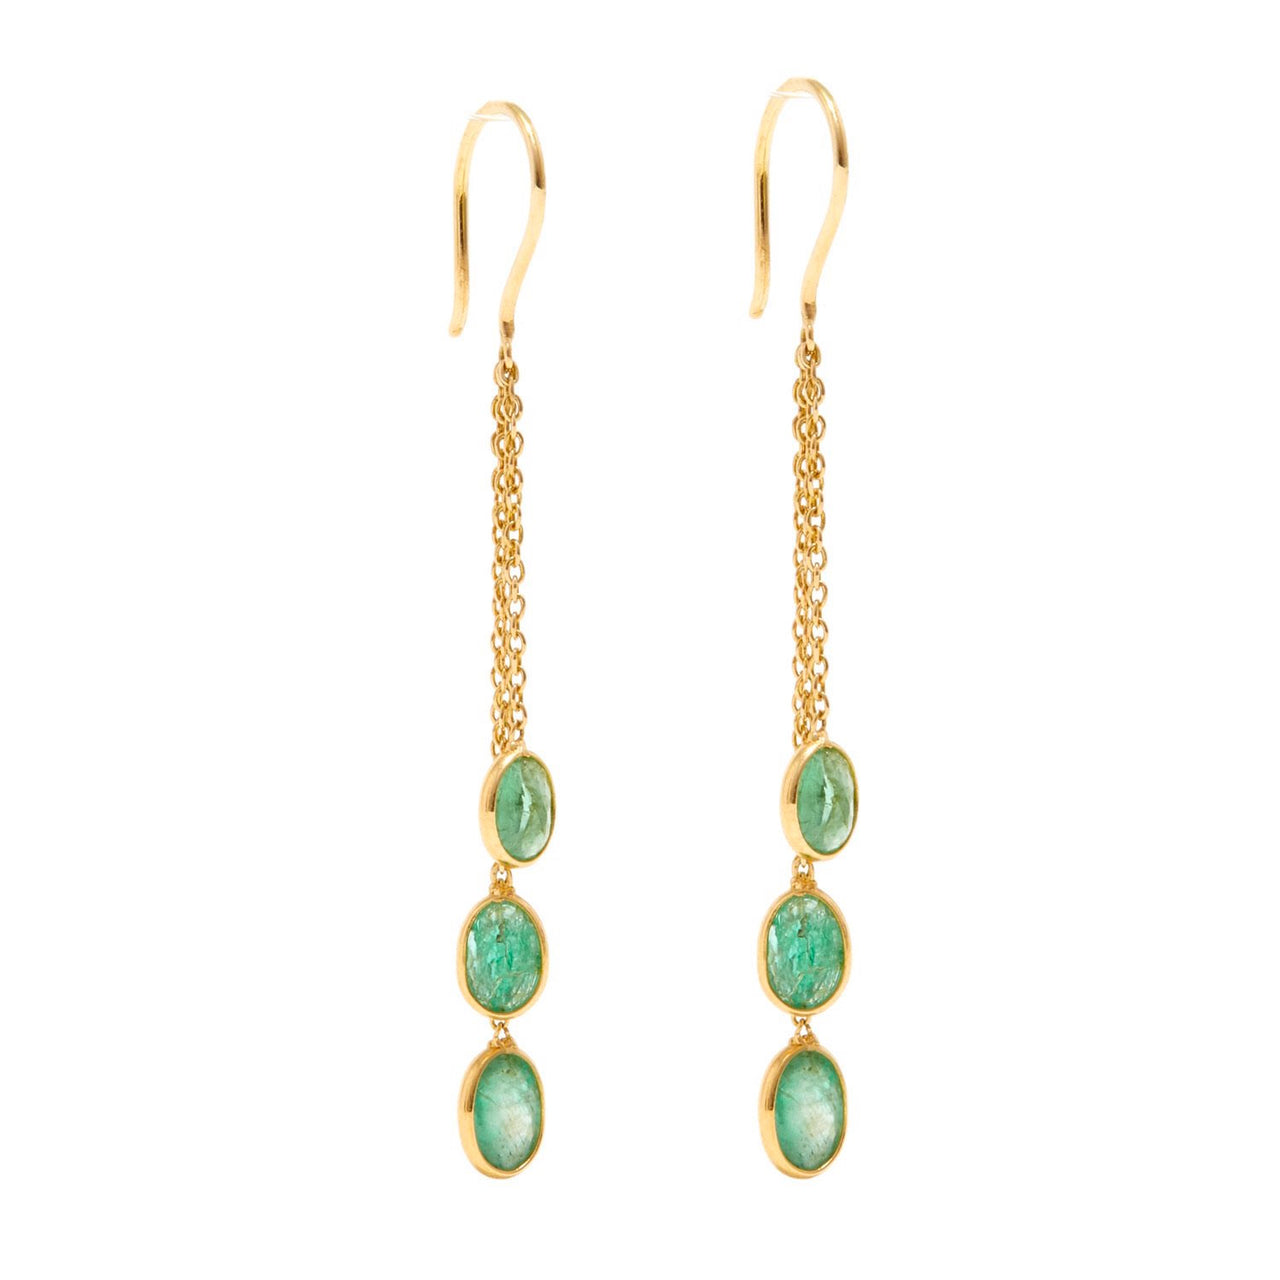 Emerald Cascade Chain Earrings-Earrings-Jaipur Atelier